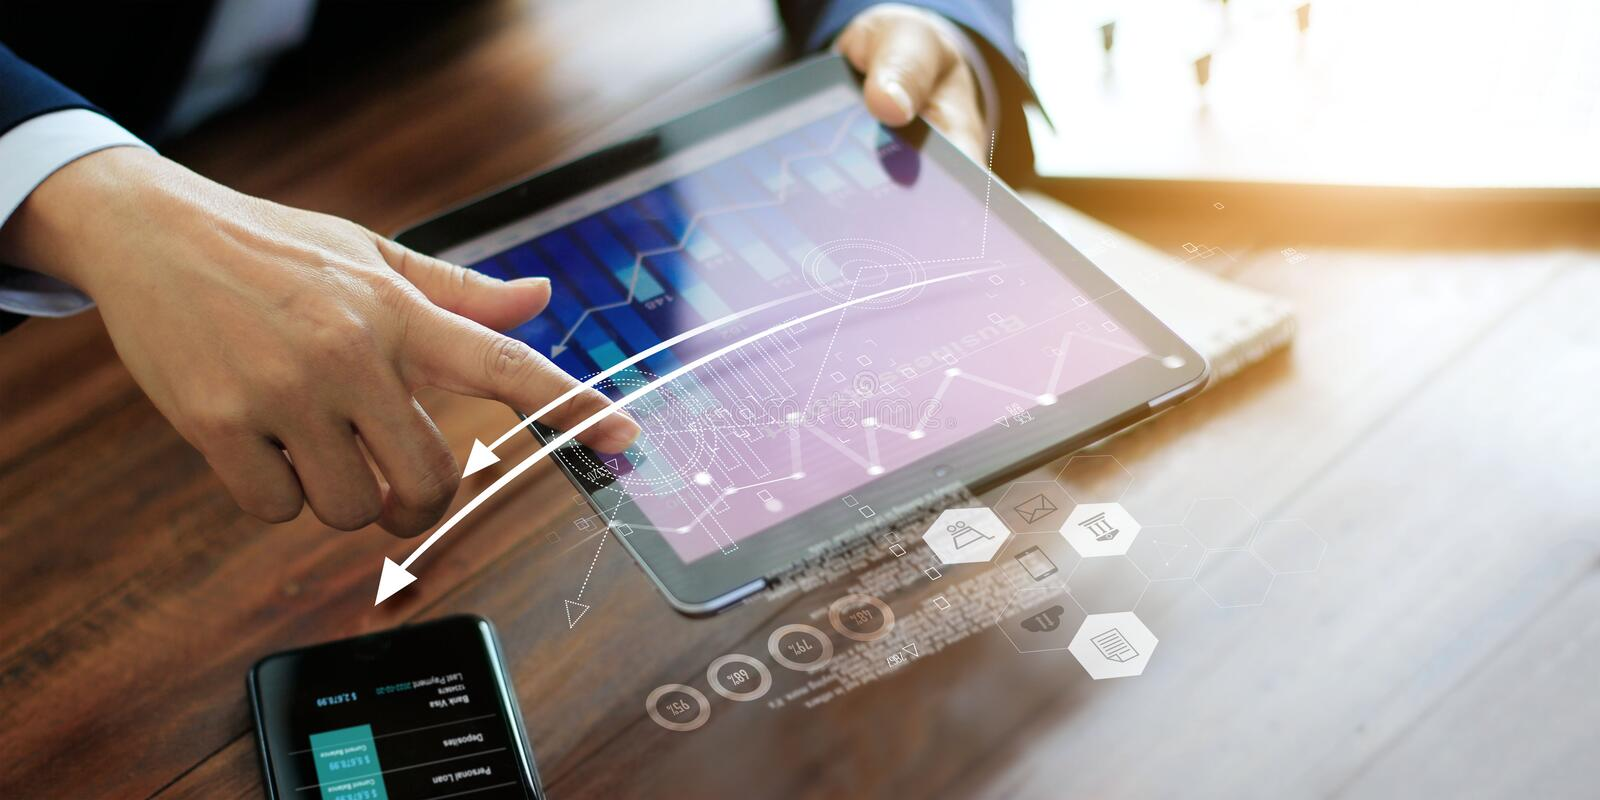 Businessman using tablet analyzing sales data and economic growth graph. Business planning and strategy. Digital marketing stock photo